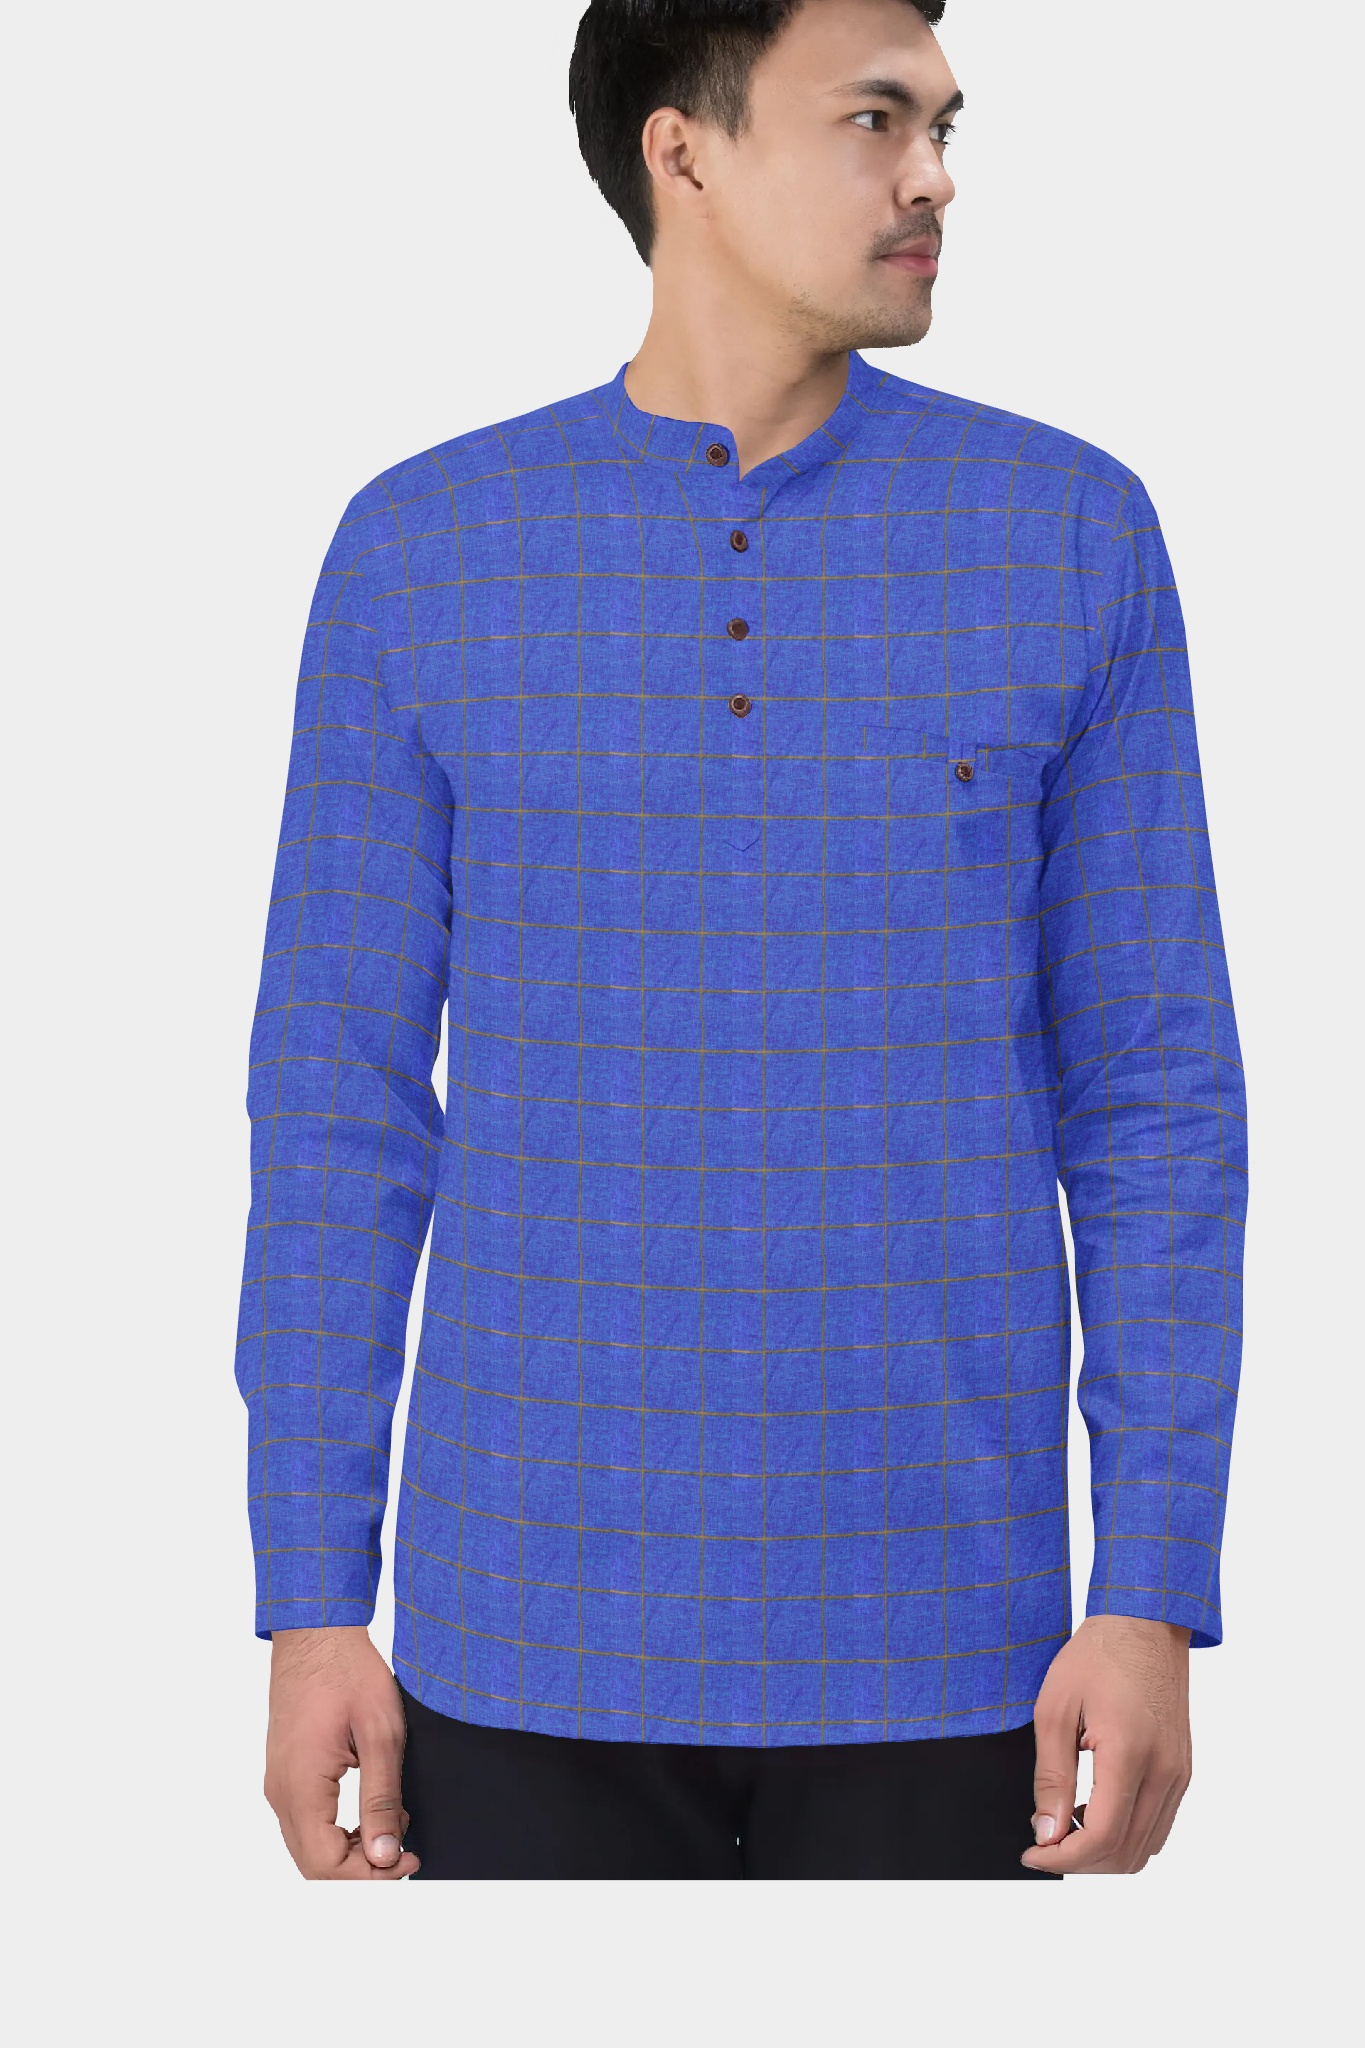 /home/customer/www/fabartcraft.com/public_html/uploadshttps://www.shopolics.com/uploads/images/medium/Blue-Golden-Cotton-Short-Kurta-35432.jpg